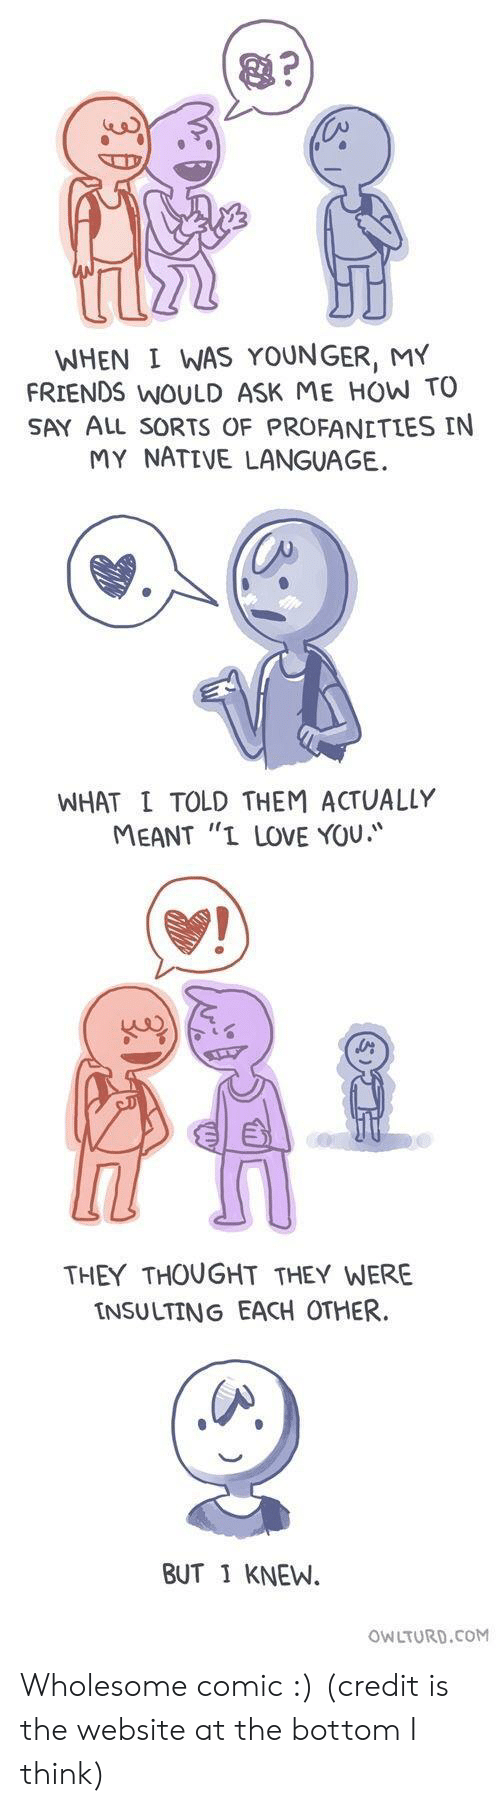 "Insulting: WHEN I WAS YOUNGER, MY  FRIENDS WOULD ASK ME HOW TO  SAY ALL sORTS OF PROFANETLES IN  MY NATIVE LANGUAGE.  WHAT L TOLD THEM ACTUALLY  MEANT ""I LOVE YOU.  THEY THOUGHT THEY WERE  INSULTING EACH OTHER  BUT 1 KNEW.  OWLTURD.CoM Wholesome comic :) (credit is the website at the bottom I think)"